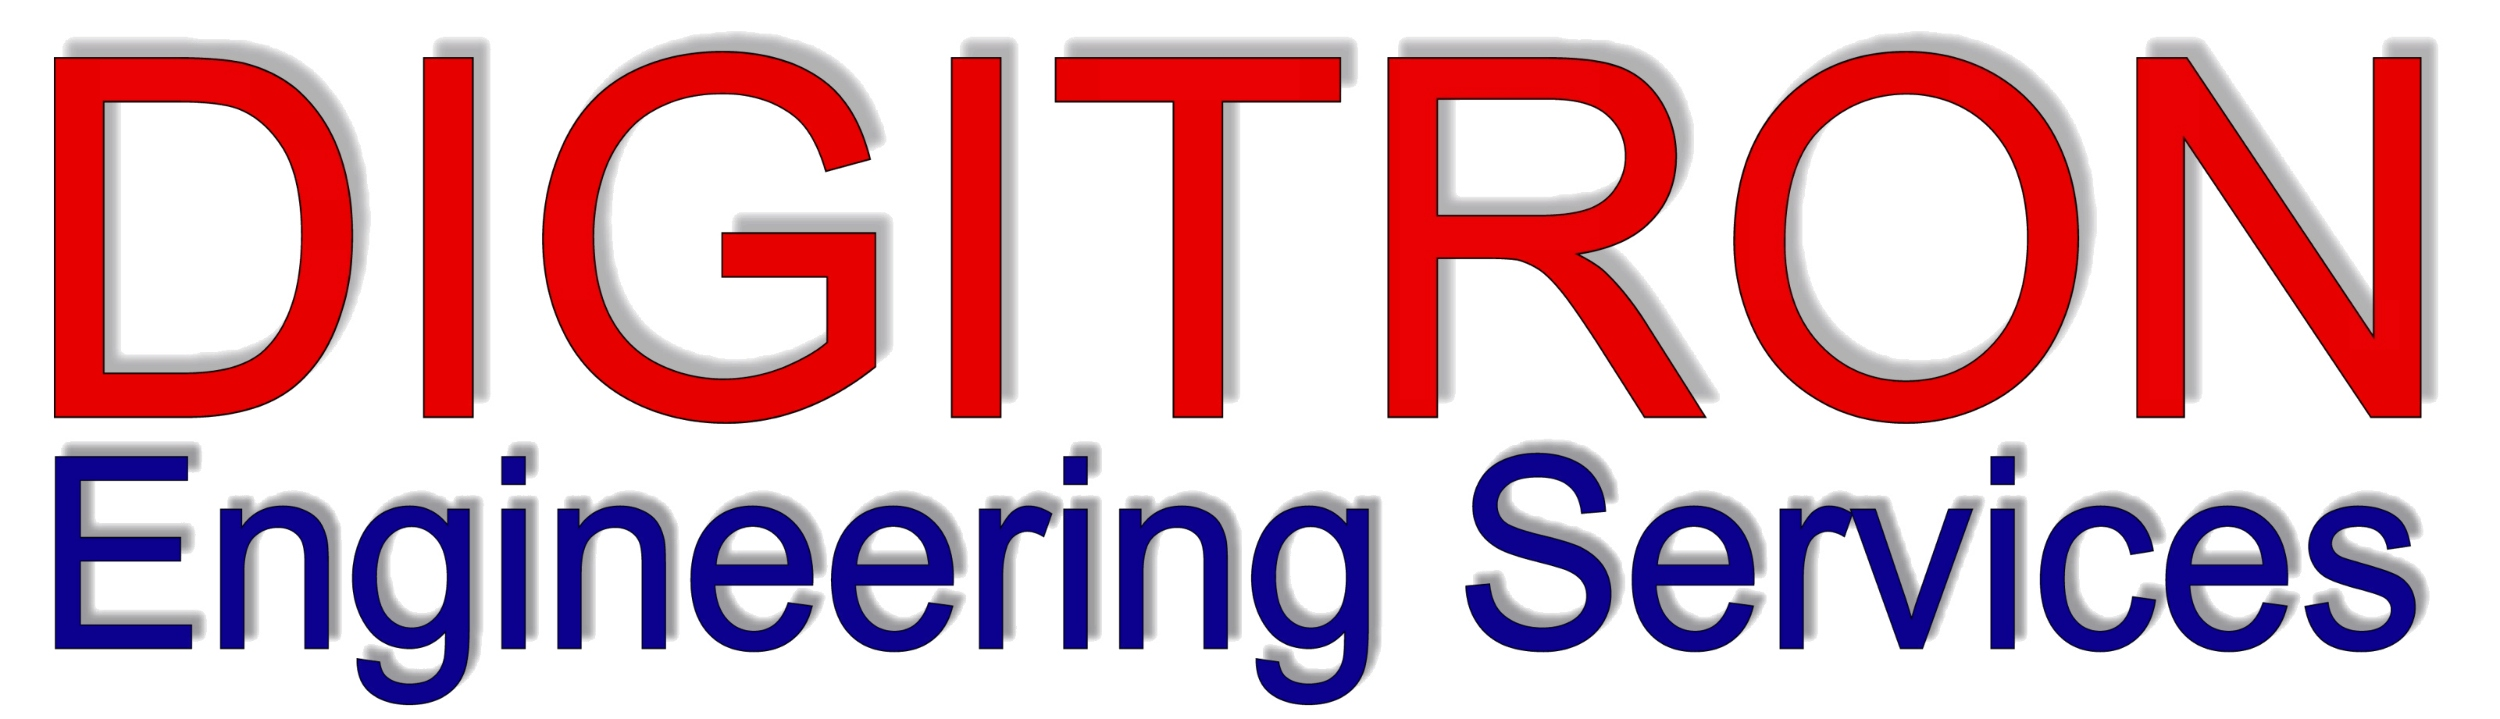 Digitron Engineering Services